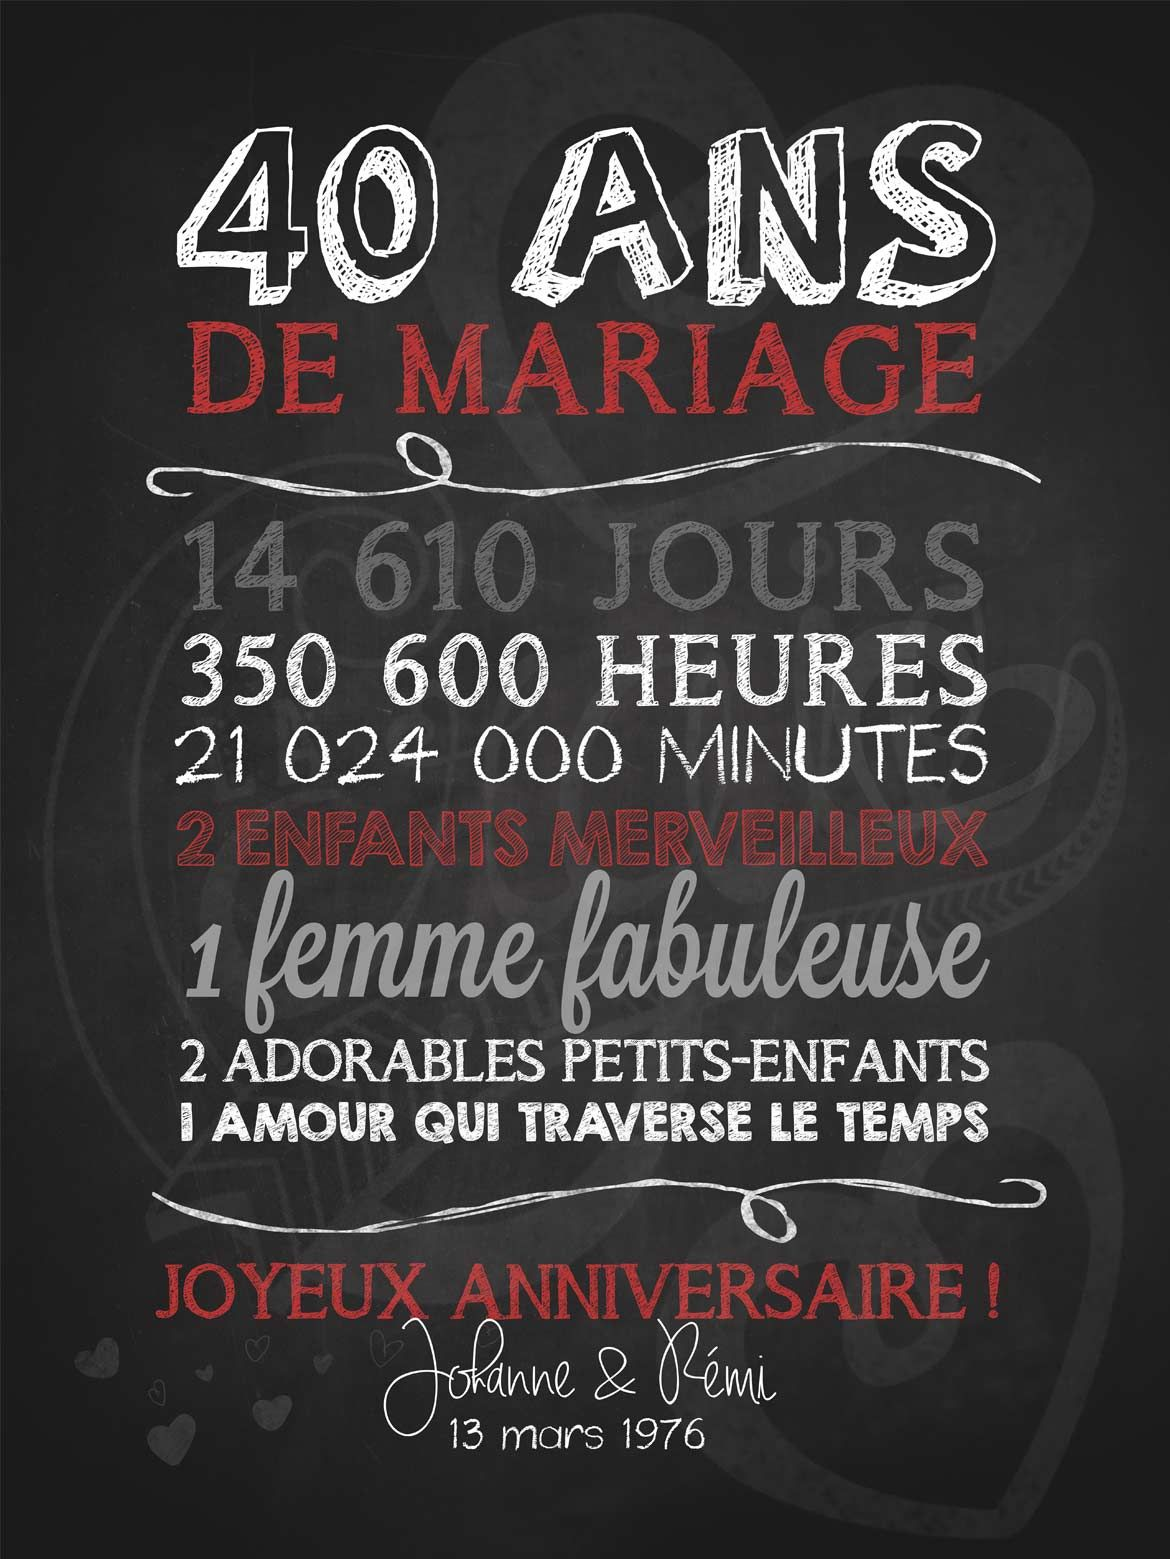 bien aim faire part anniversaire de mariage 40 ans pi61 montrealeast. Black Bedroom Furniture Sets. Home Design Ideas